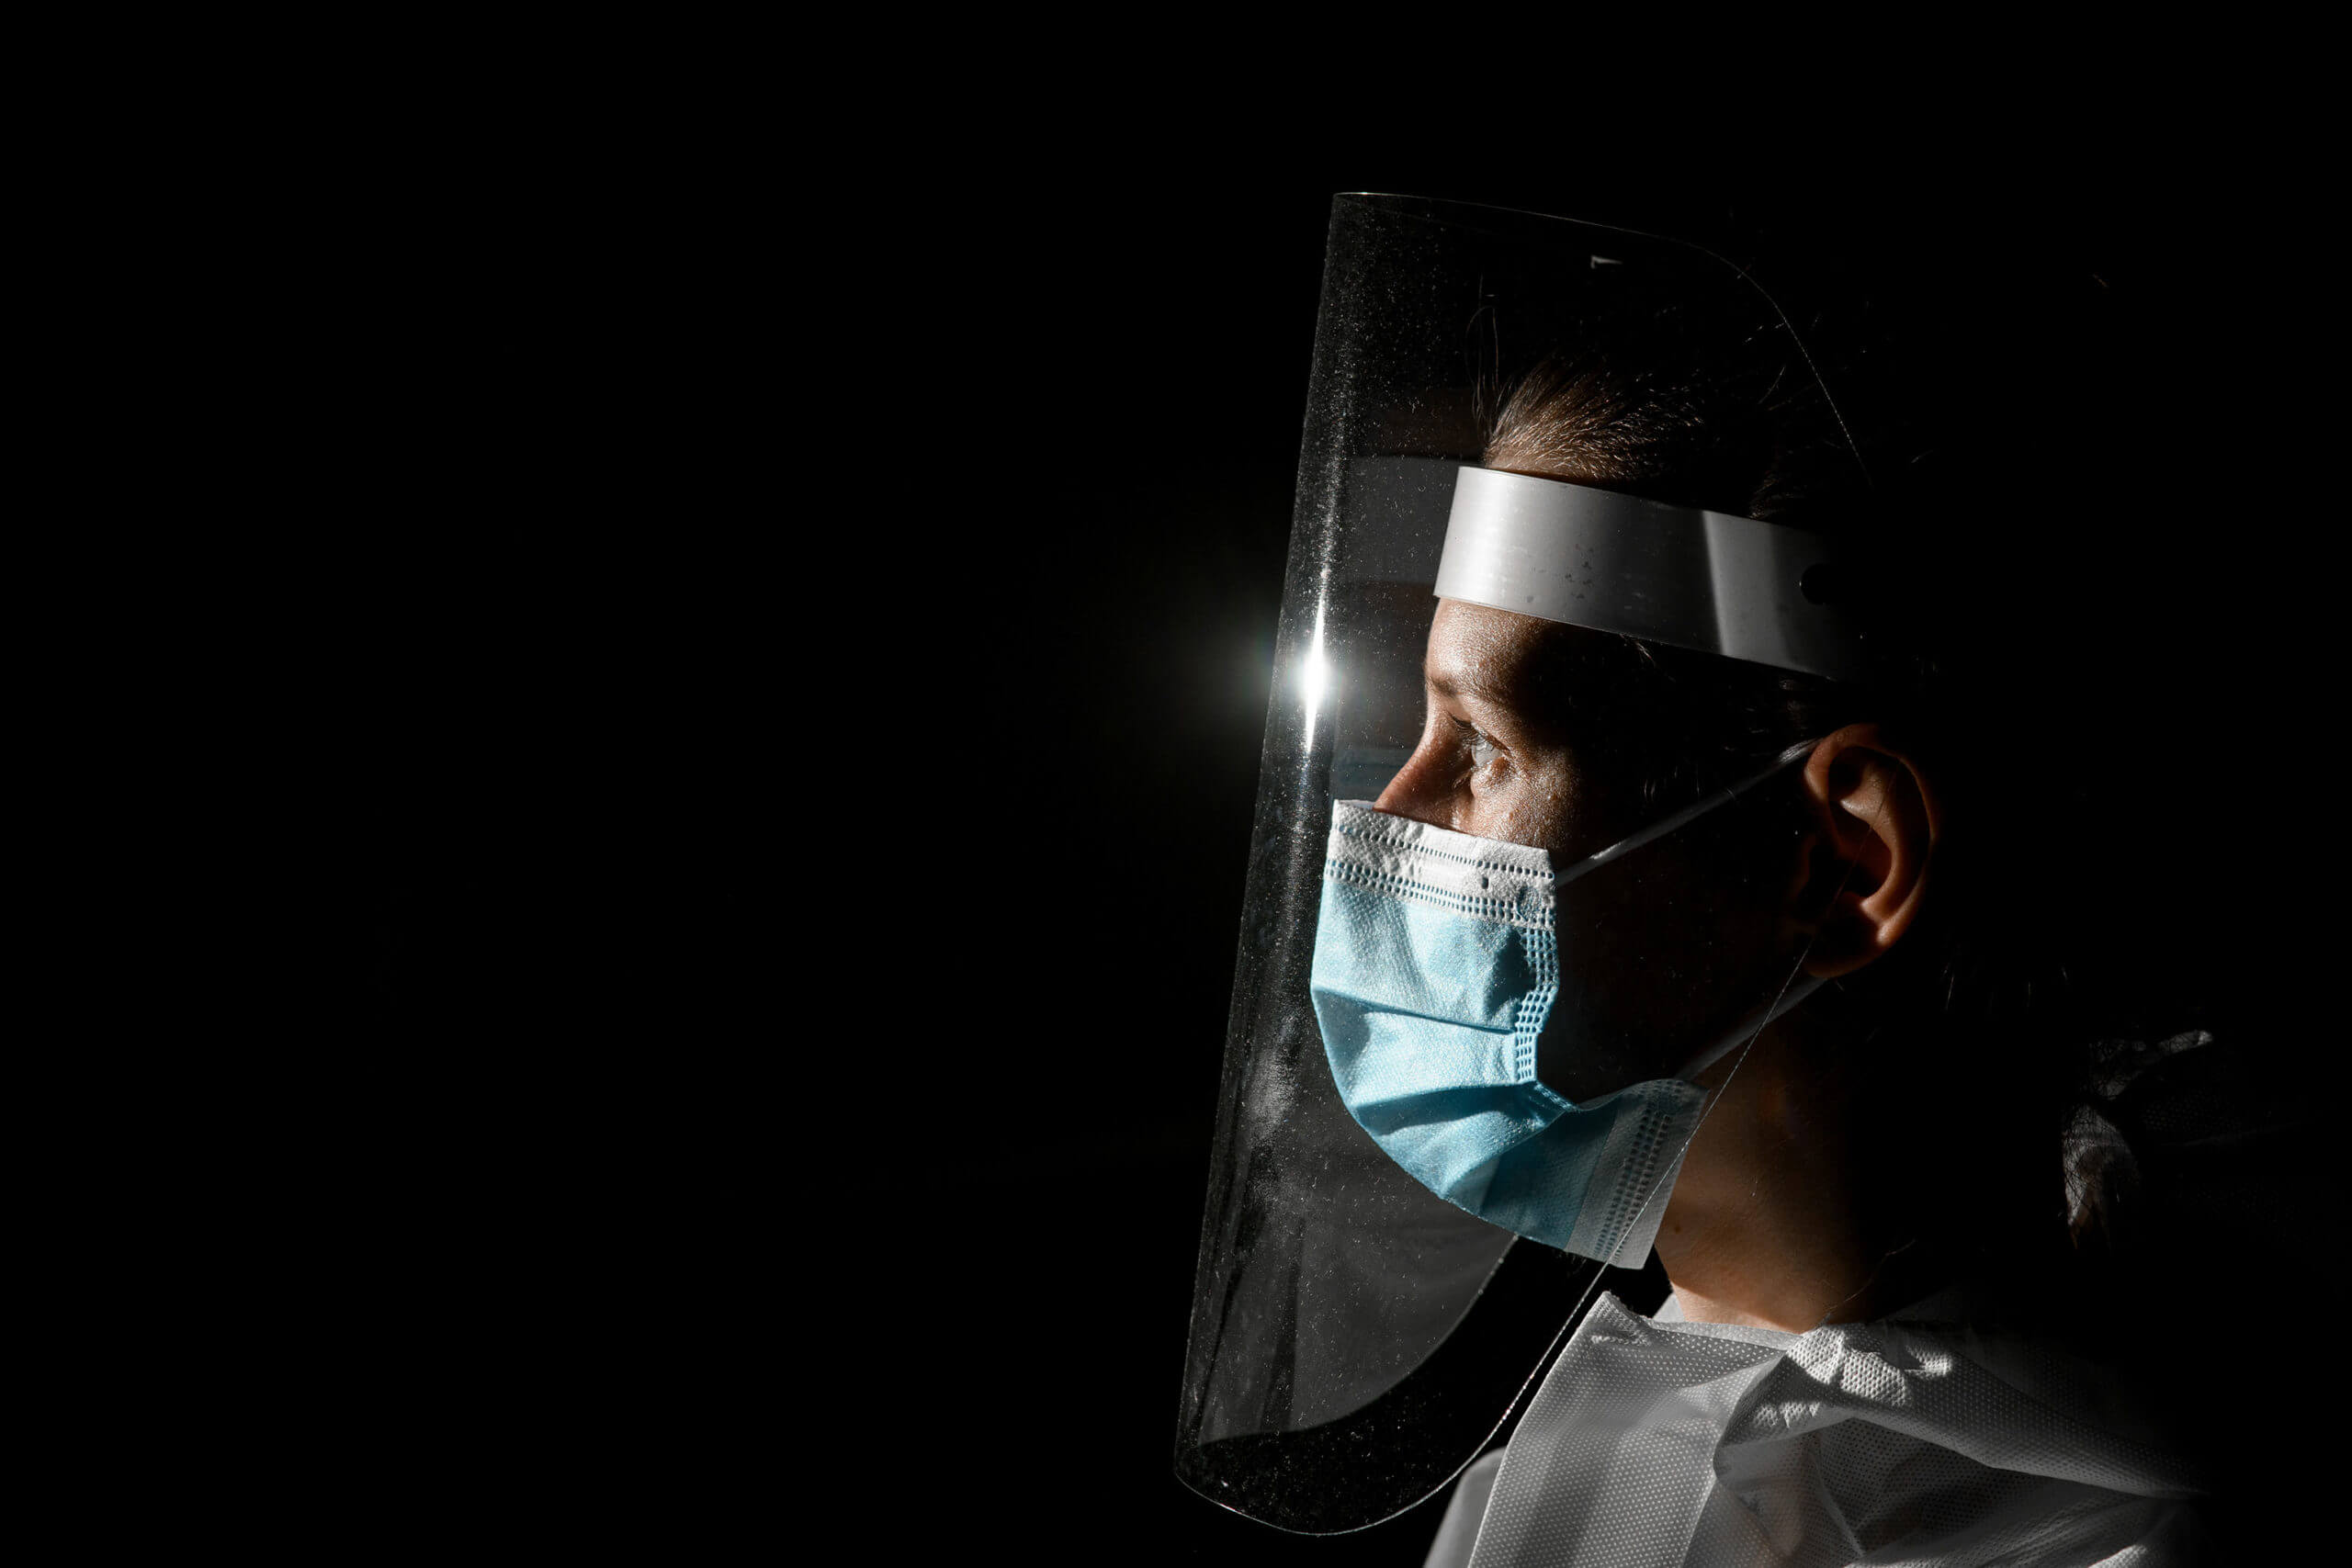 Dentist wearing full PPE with a black background